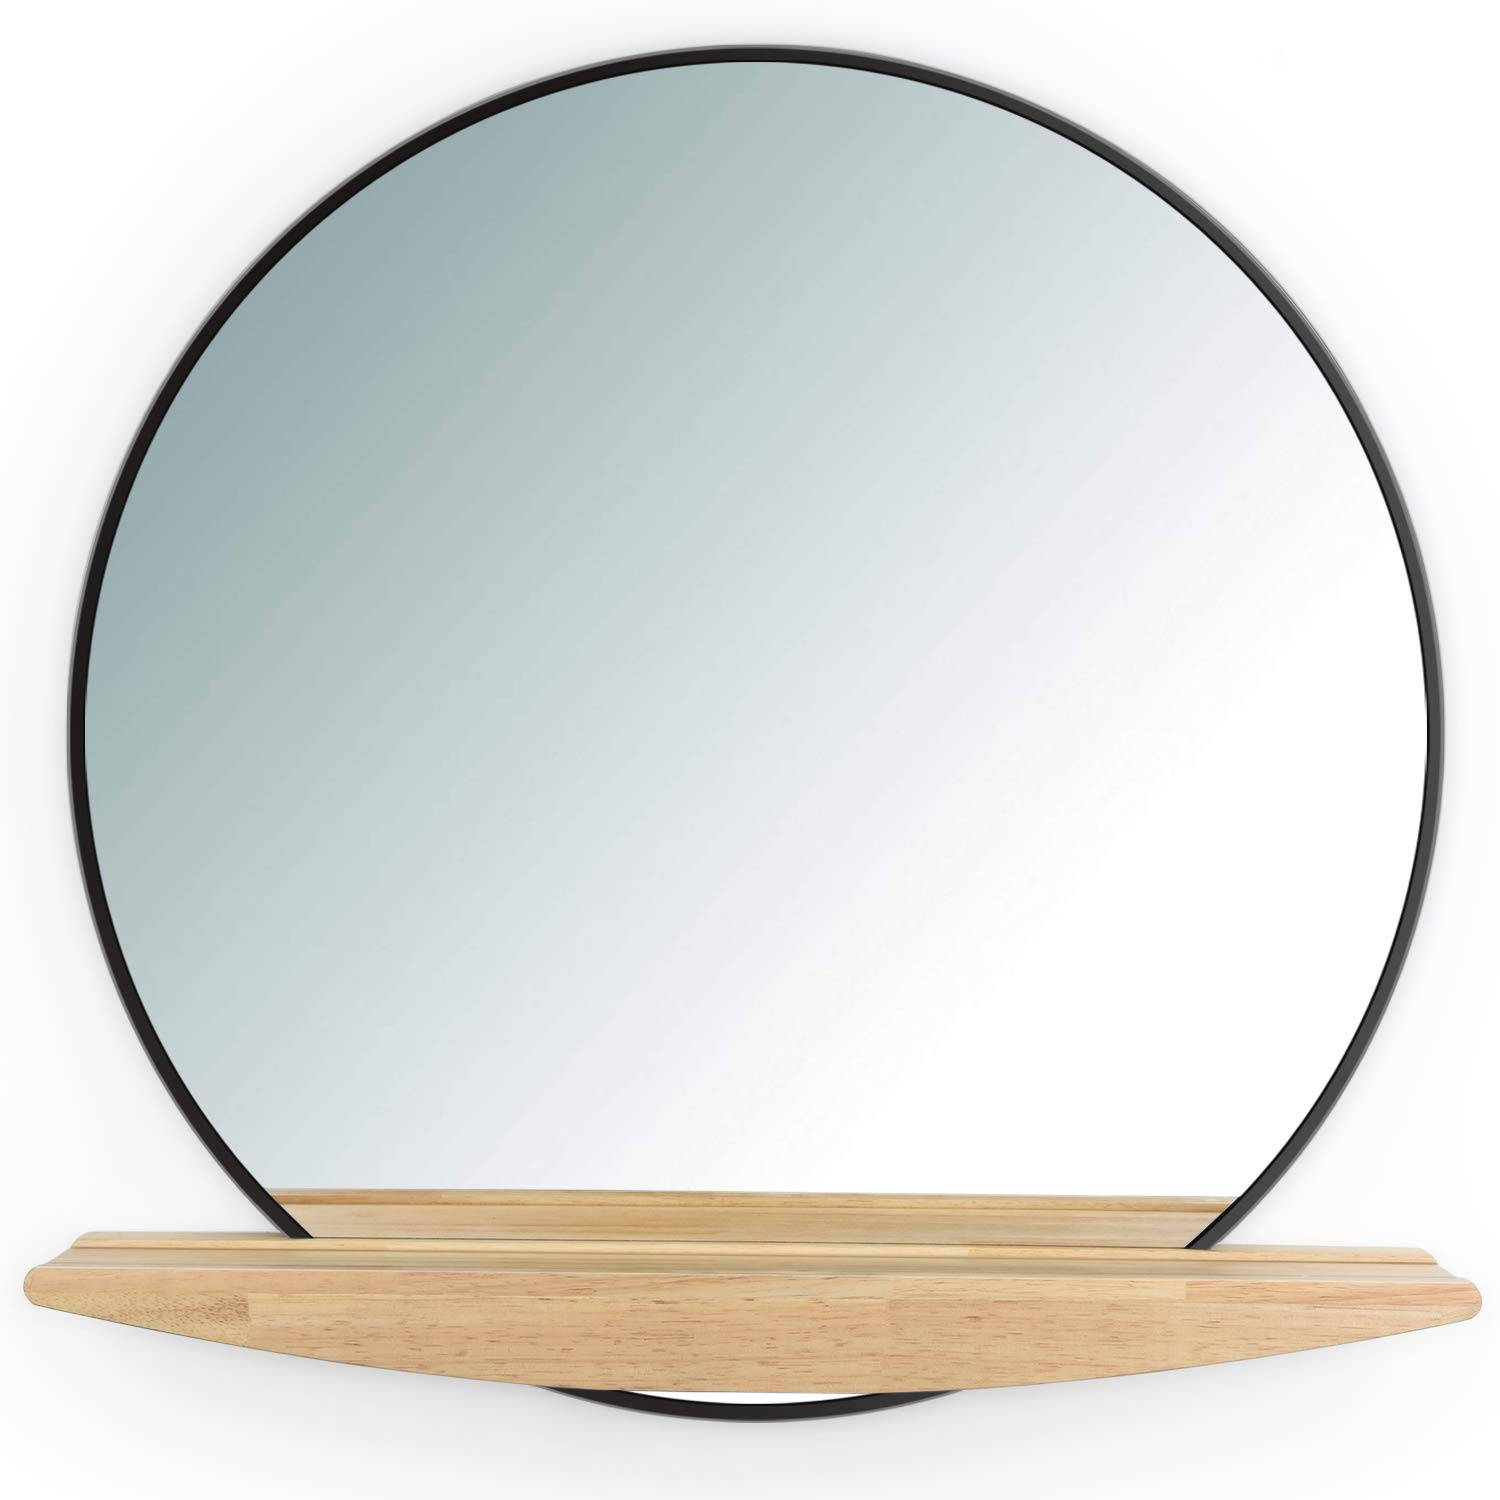 SRIWATANA Round Wall Mirror with Shelf, 23.6-Inch Bathroom Mirrors for Wall, Frameless Black Vanity Mirror for Entryway, Washroom and Bedroom